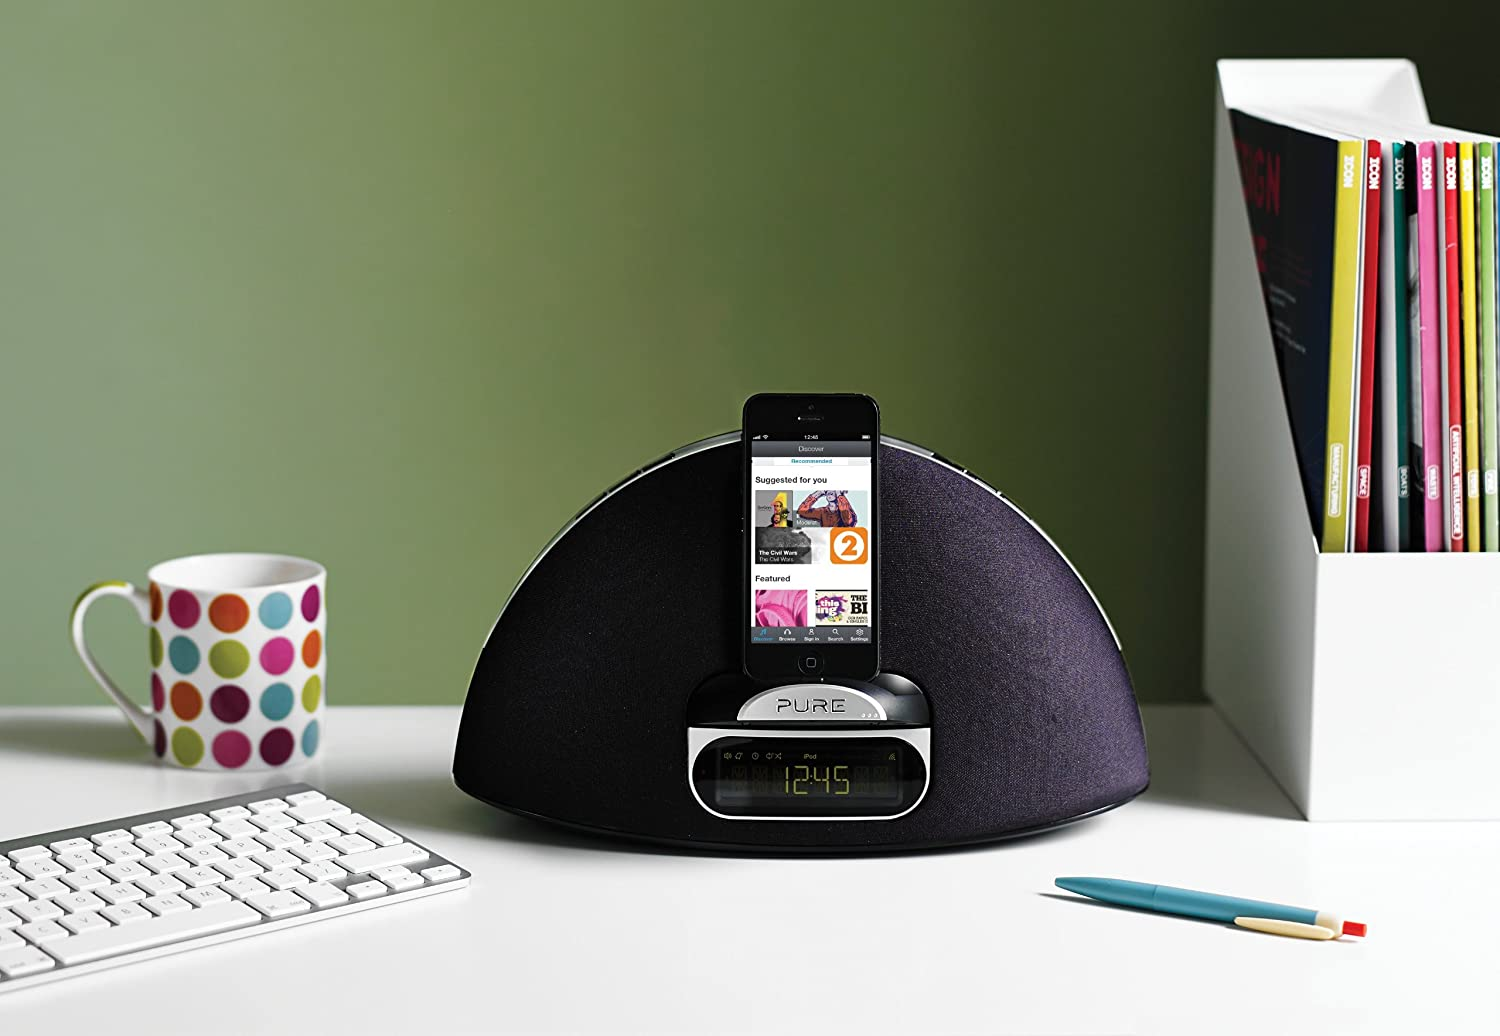 Pure Contour i1 Air Airplay Streaming System Docking Speaker Station for All Apple Items Nano iPad 1 2 3 4 Classic Iphone 1 2 3 3gs 4 4s 5 5c 5s 6 6Plus Ipad Air All Ipod Touch Ipad Mini